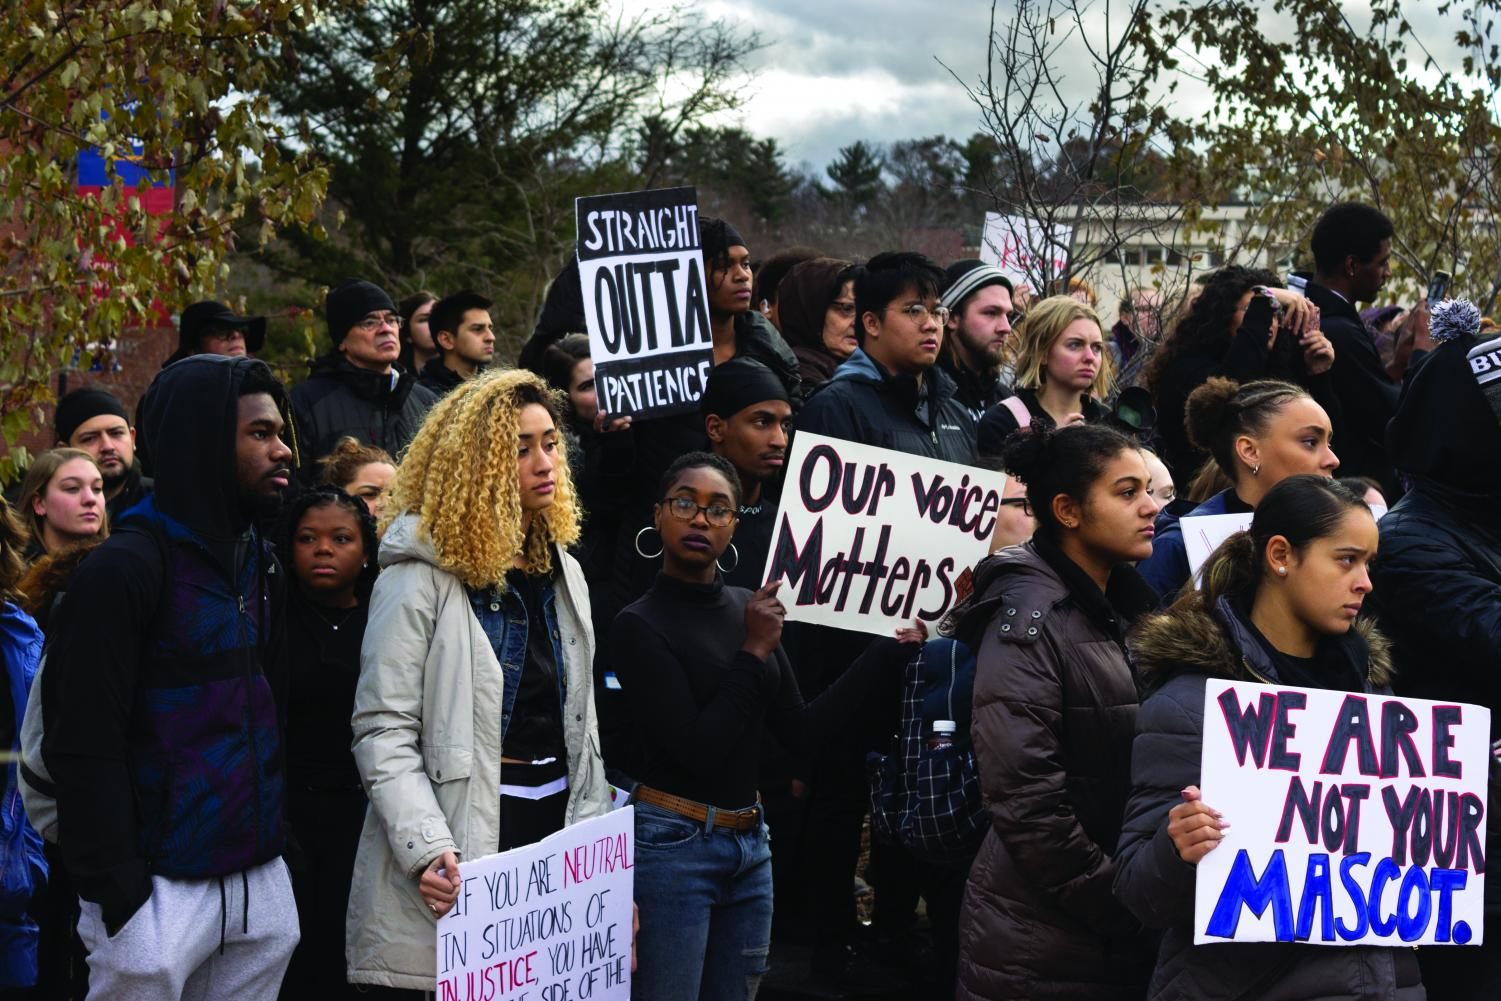 Students gathered outside Schofield on Monday following an organized classroom walk-out in order to protest the racist Snapchat conversation.